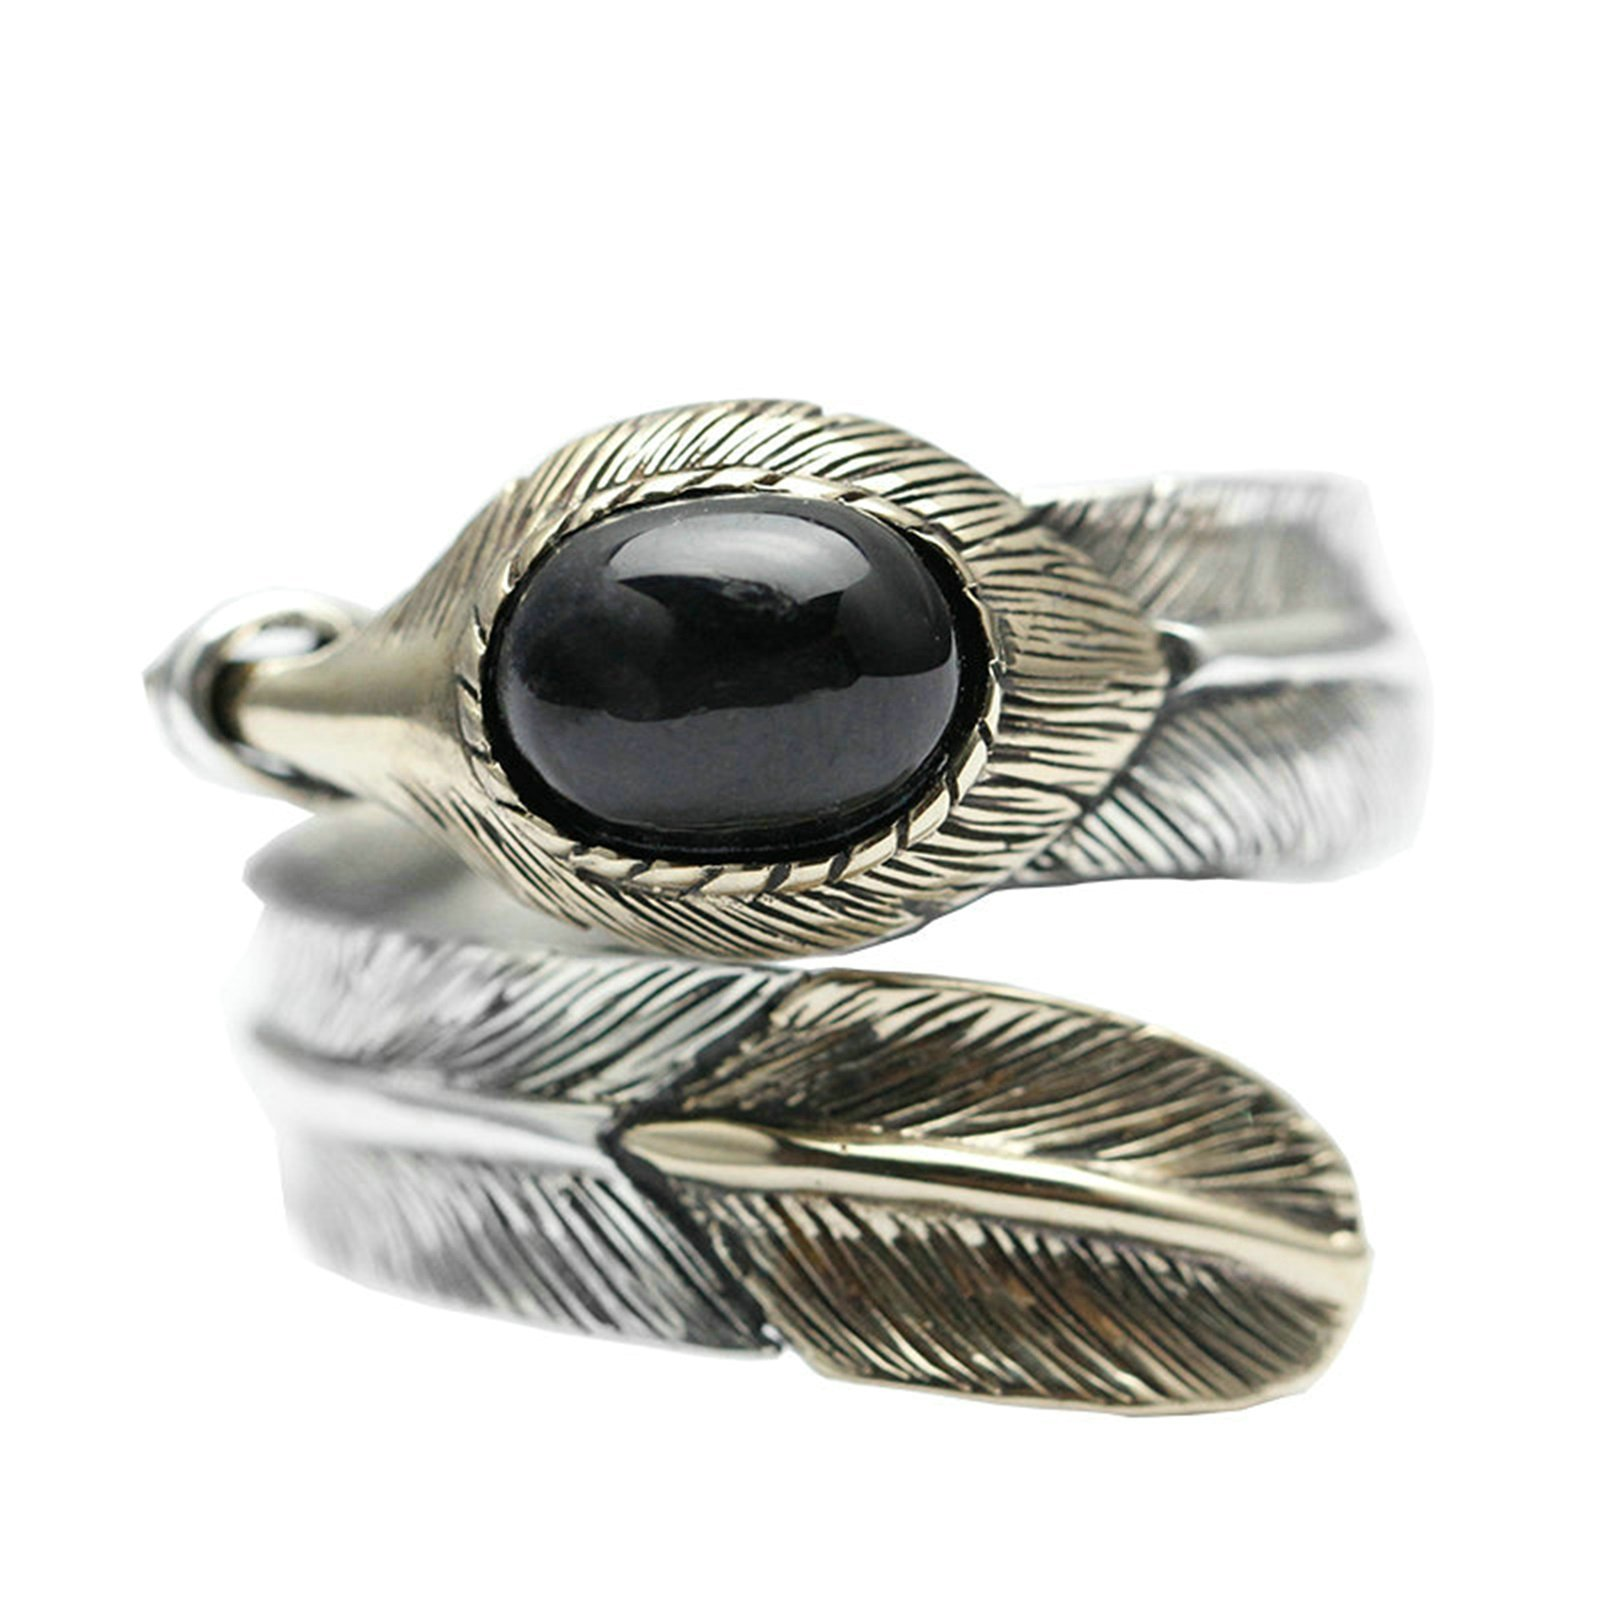 Adisaer Biker Rings Silver Ring for Men Obsidian Feather Open Ring Adjustable Size 8 Vintage Punk Jewelry